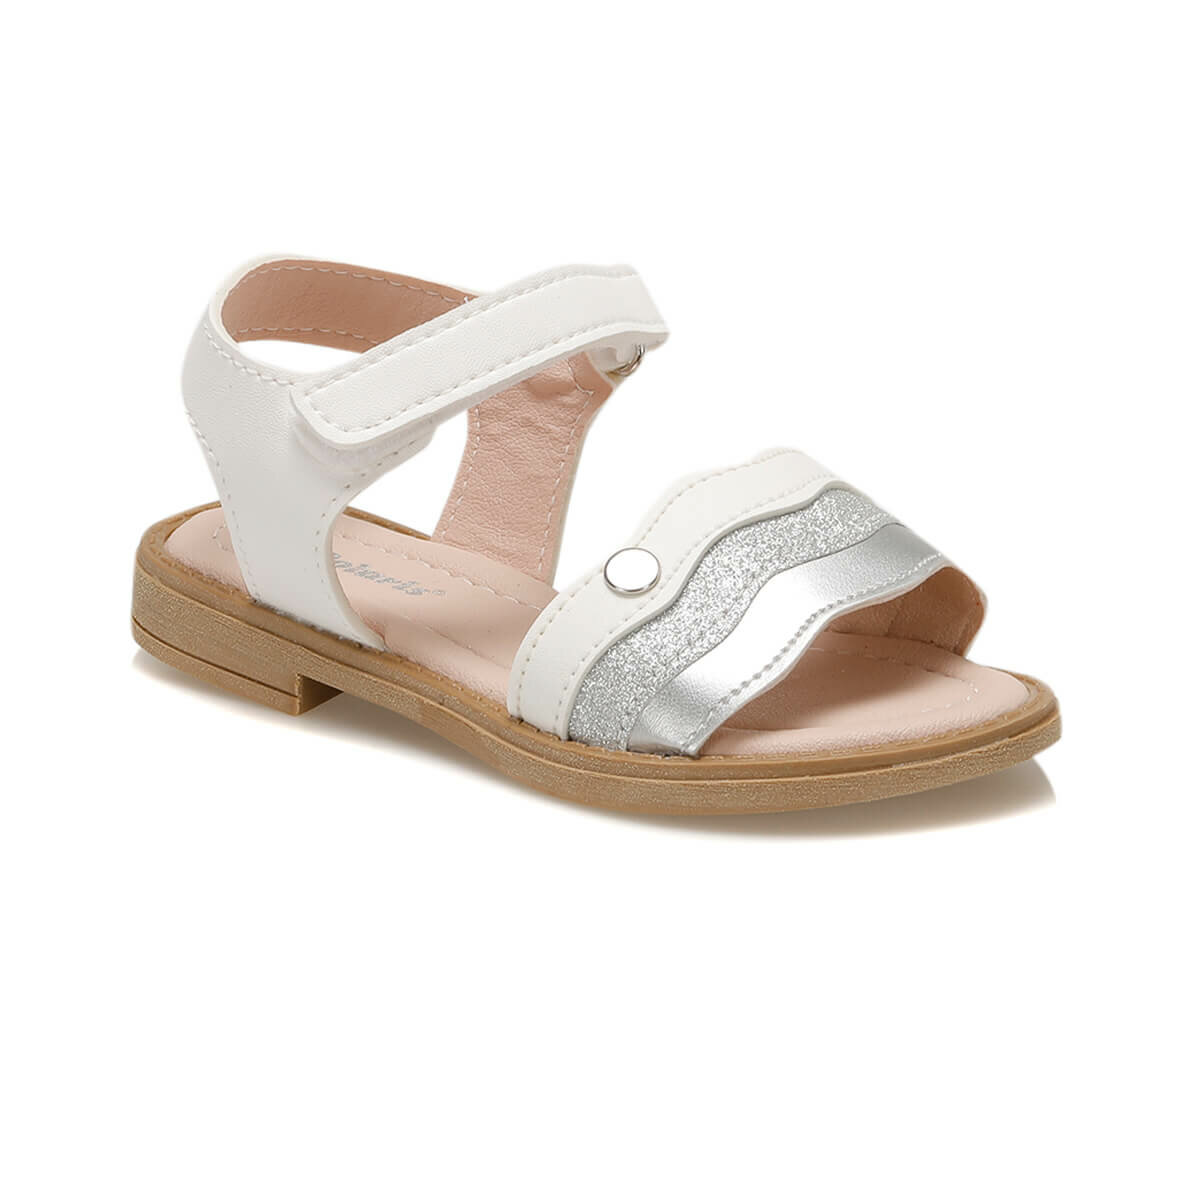 FLO 91.511314.P White Female Child Sandals Polaris